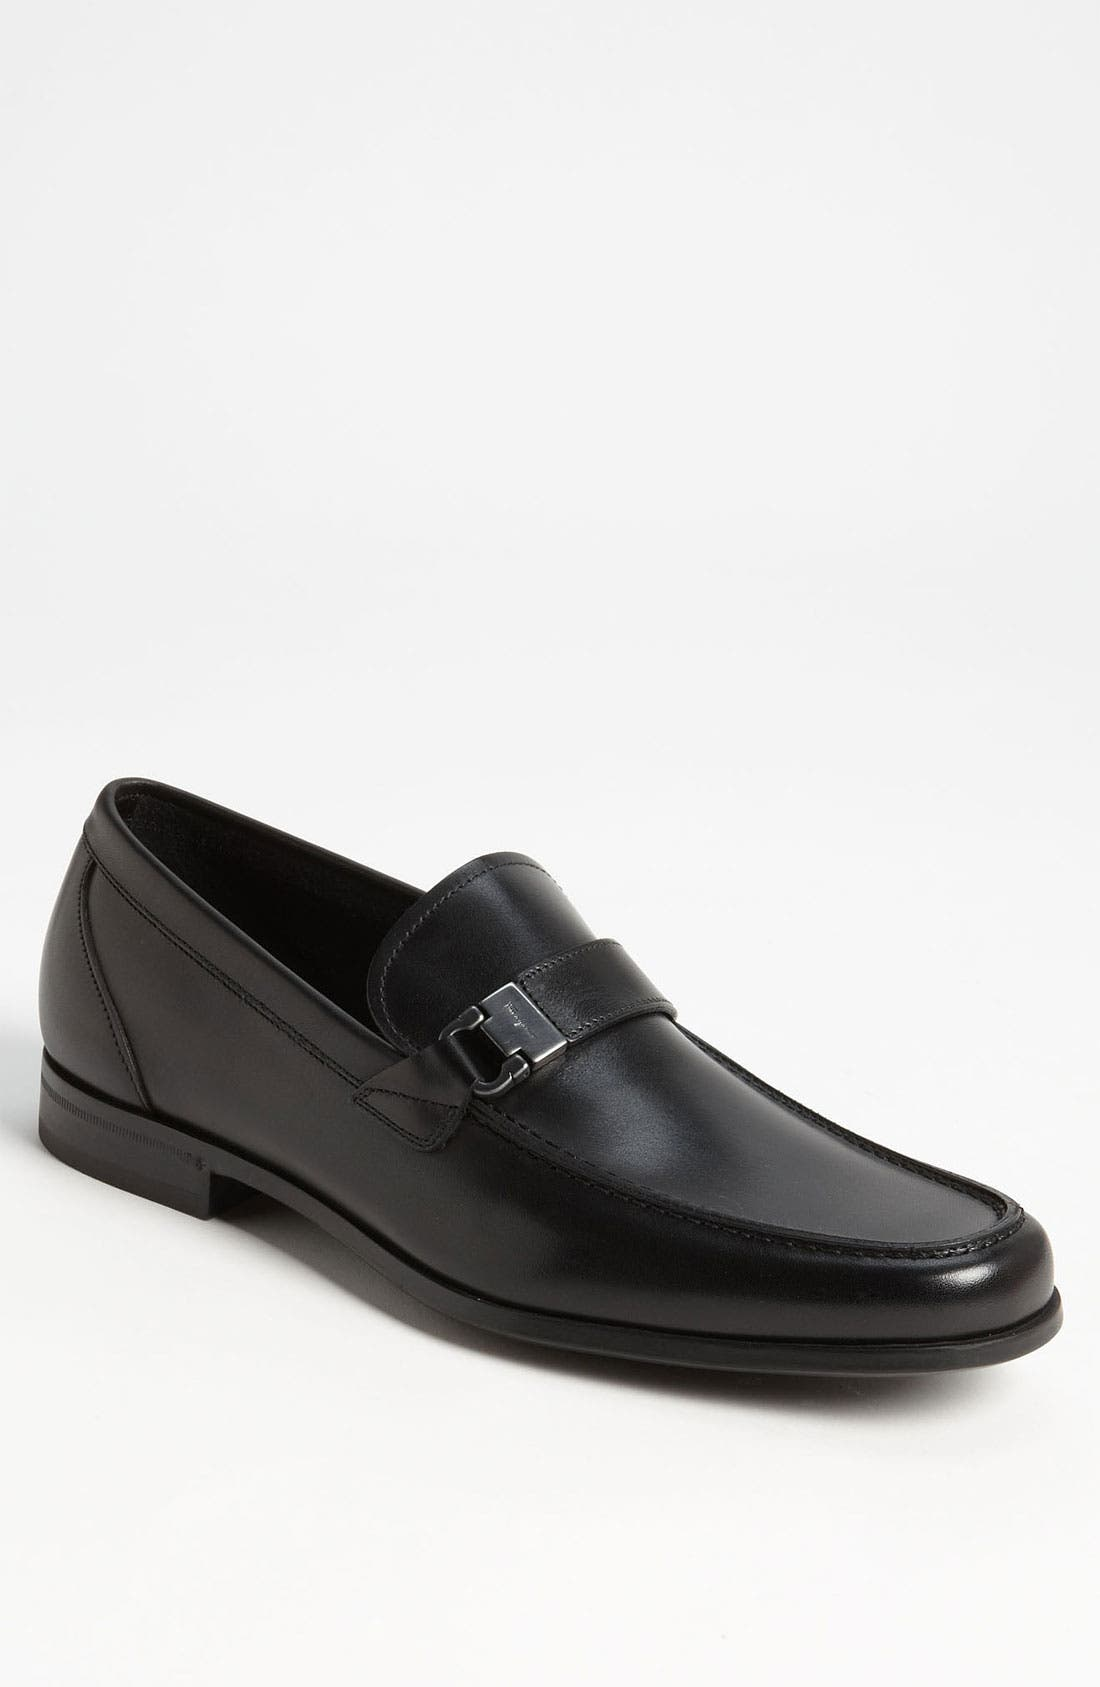 Main Image - Salvatore Ferragamo 'Tazio' Loafer (Men)